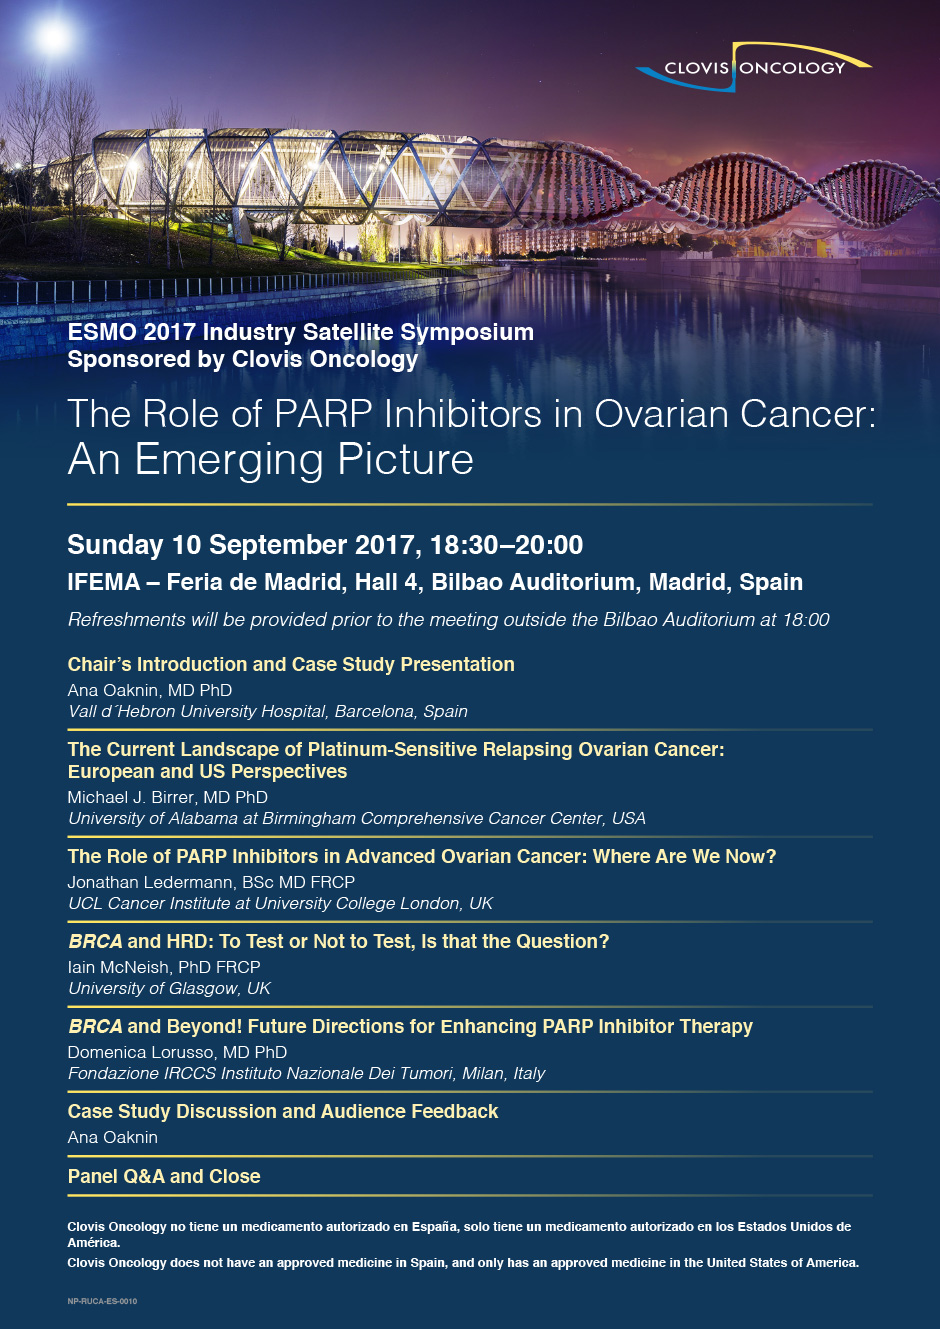 The Role of PARP Inhibitors in Ovarian Cancer An Emerging Picture